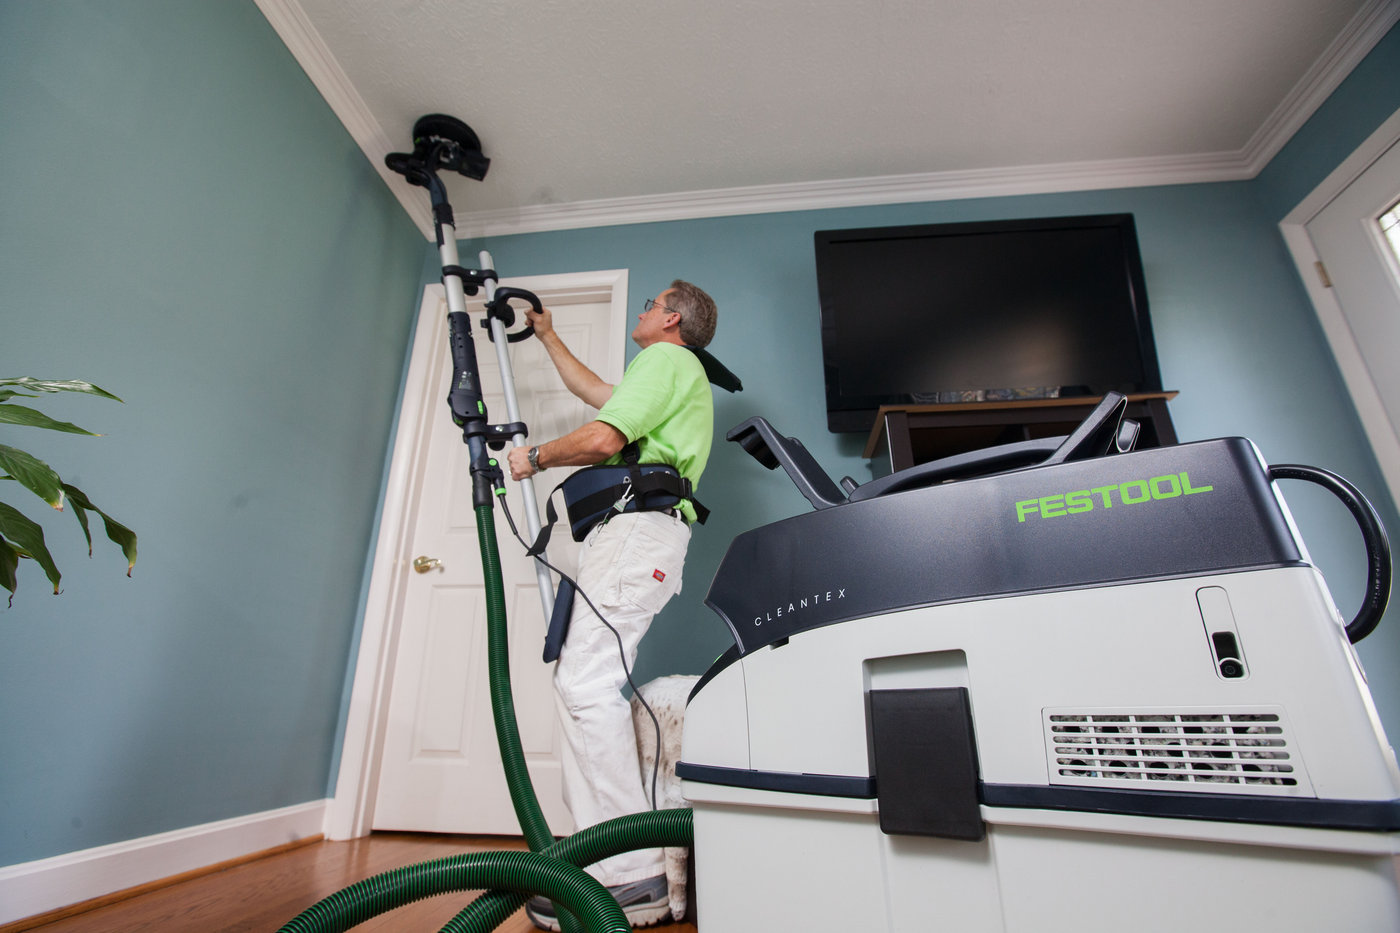 THE FESTOOL - We strongly believe that quality work requires QUALITY TOOLS. That is why we have invested in the Festool - An amazing device that has been tried and true over the years. We are better equipped for all of your restoration needs and you can be assured that we are invested in YOUR satisfaction as one of our clients.